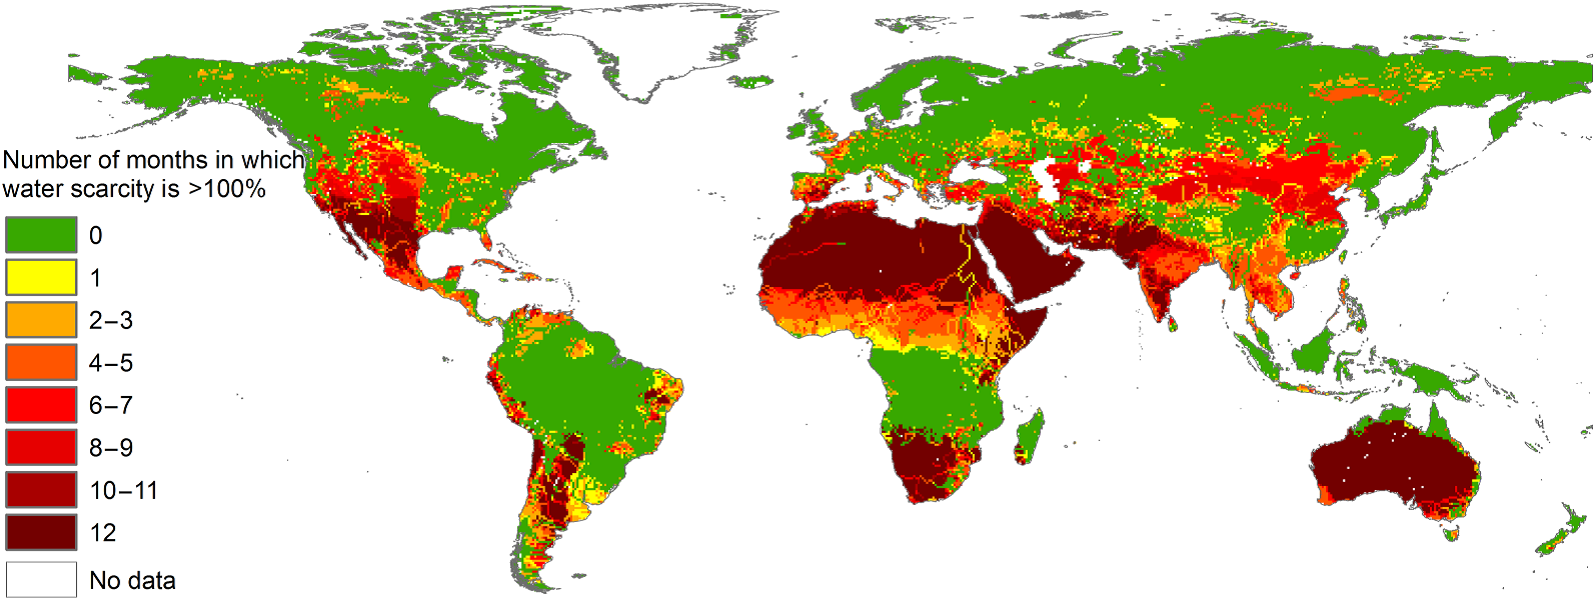 Two-Thirds of the World Population Facing Severe Water Scarcity